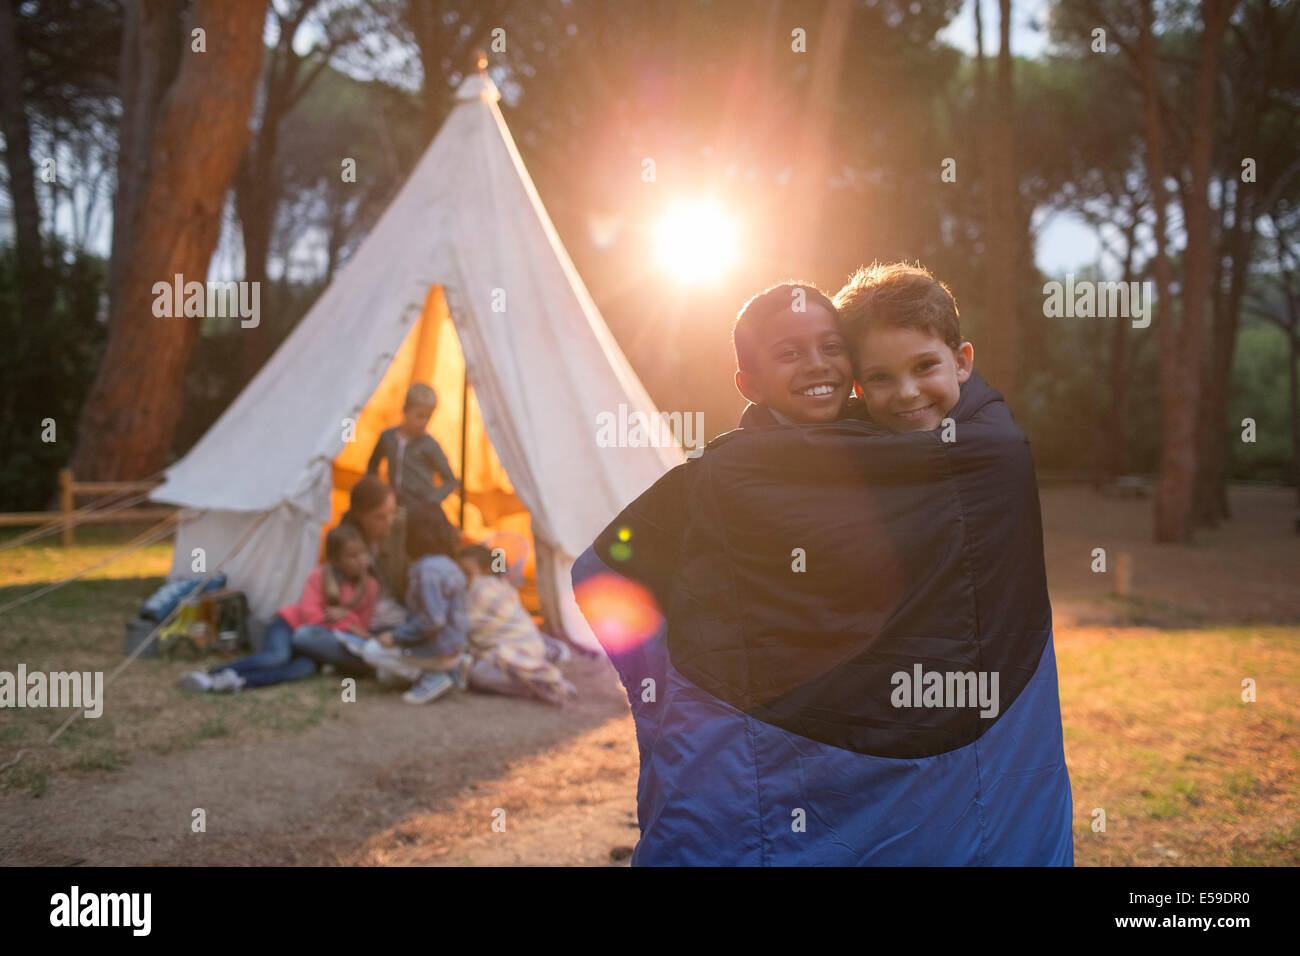 Boys wrapped in blanket at campsite - Stock Image